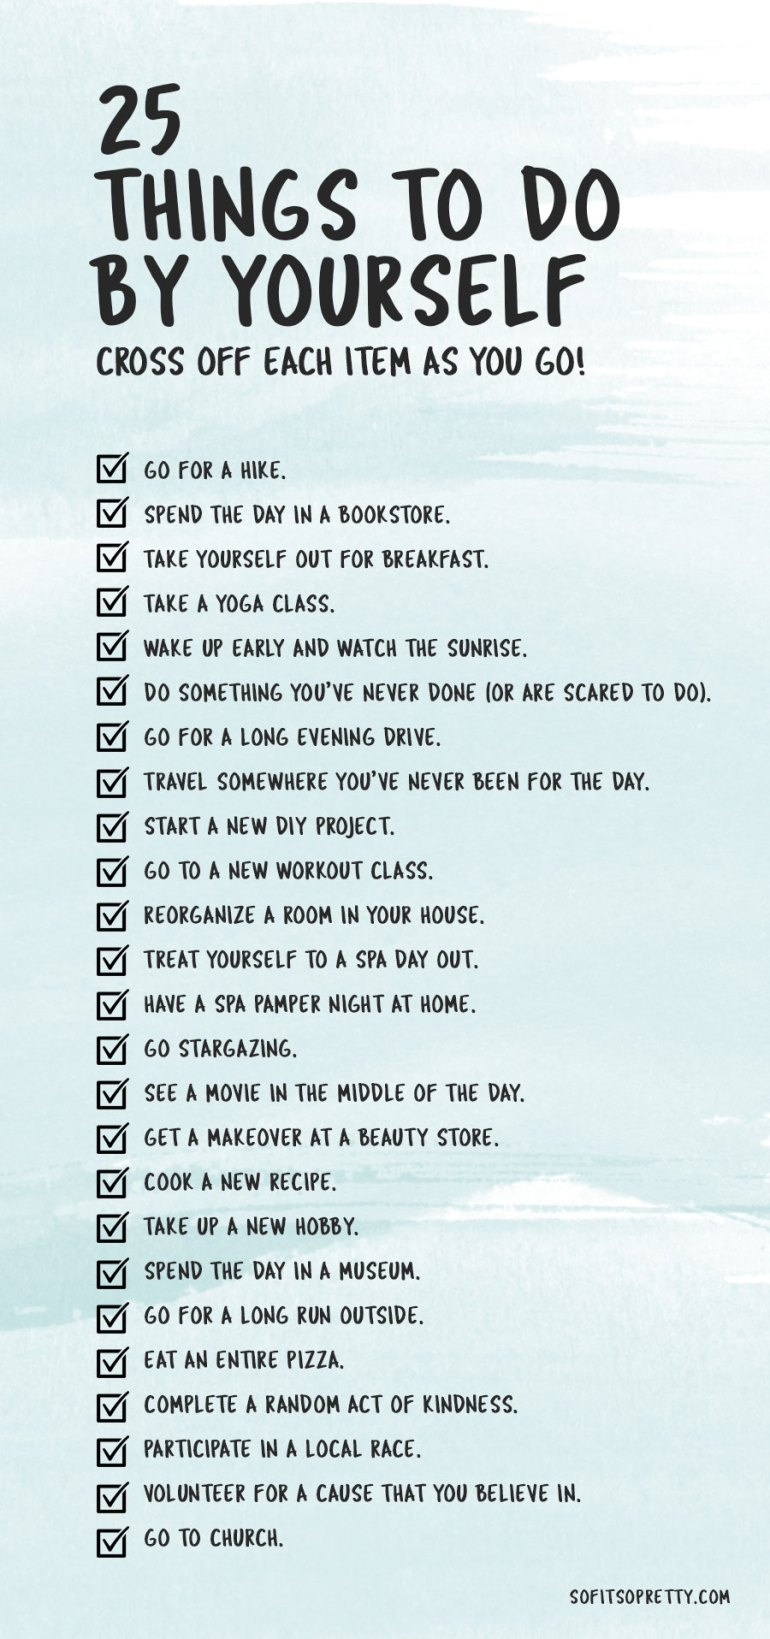 25-Things-to-do-by-Yourself